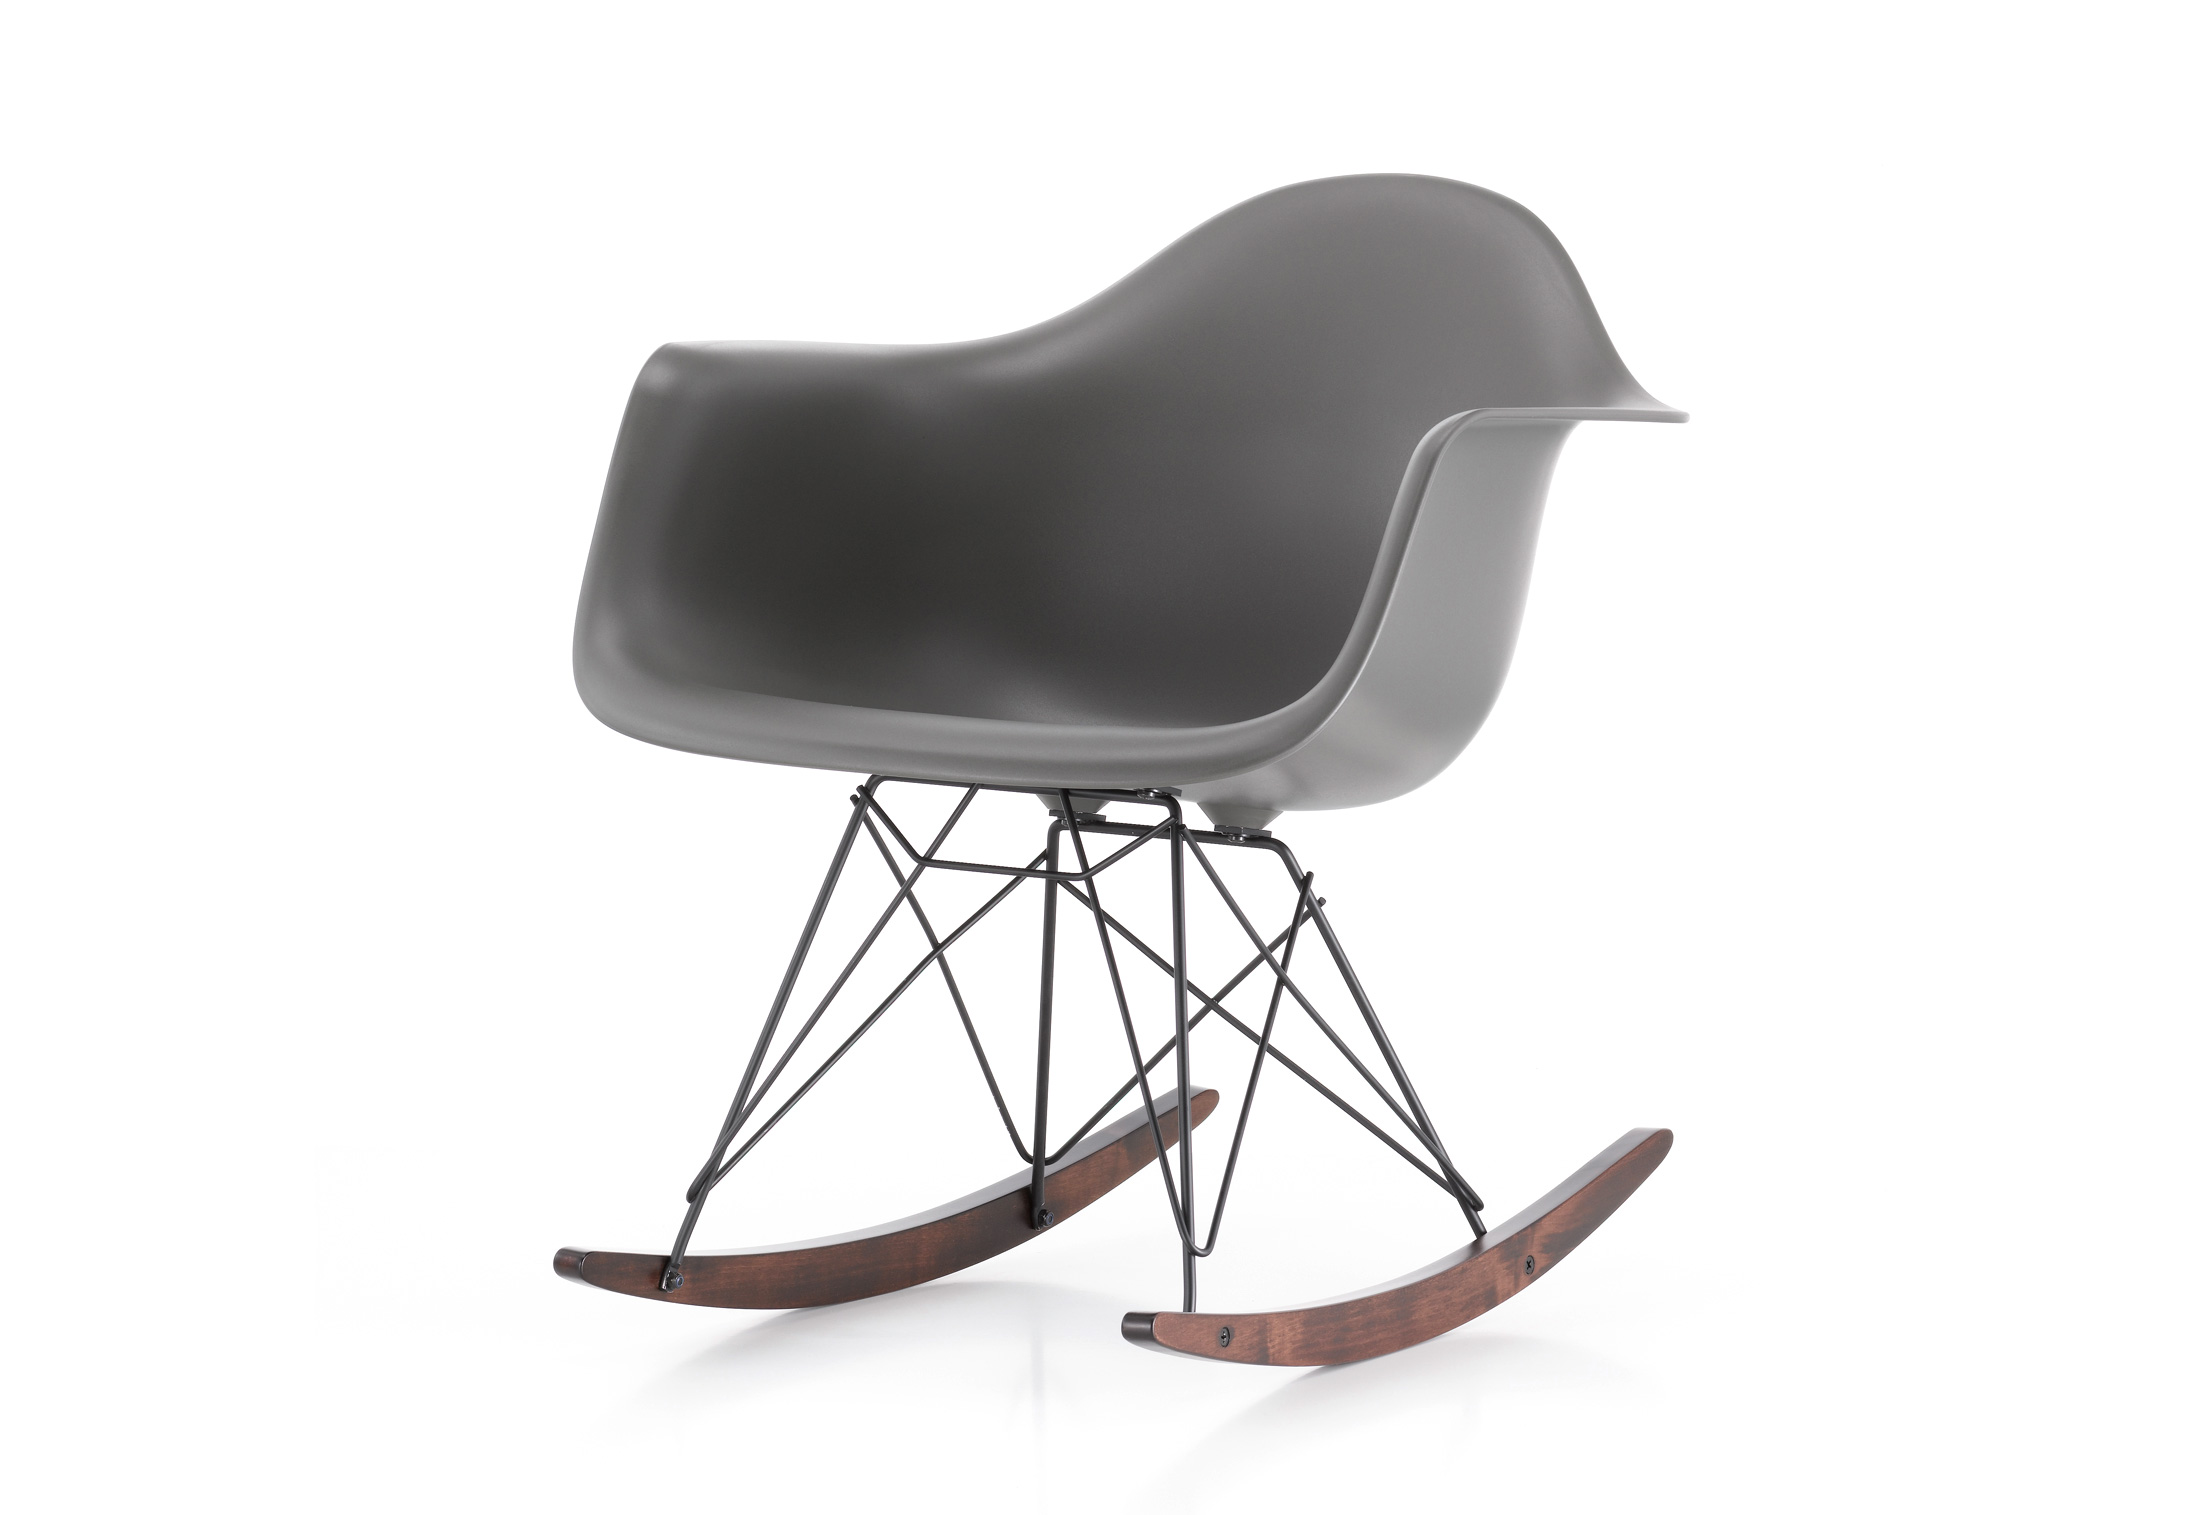 Eames plastic armchair rar by vitra stylepark for Chaise eames rar vitra